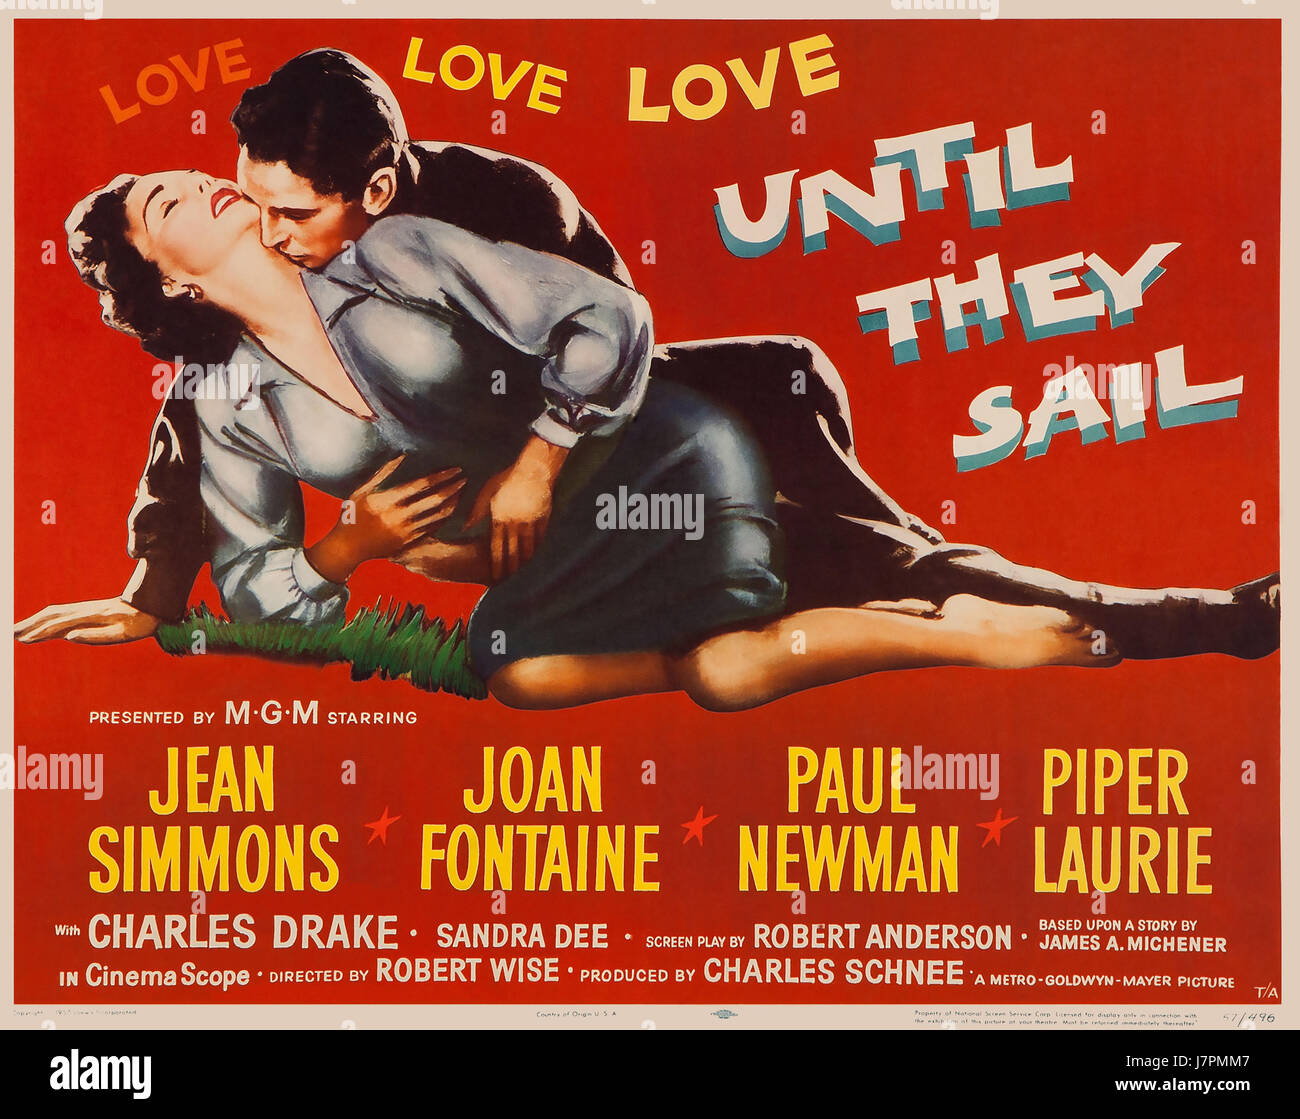 UNTIL THEY SAIL 1957 b/w MGM film with Jean Simmons and Paul Newman - Stock Image